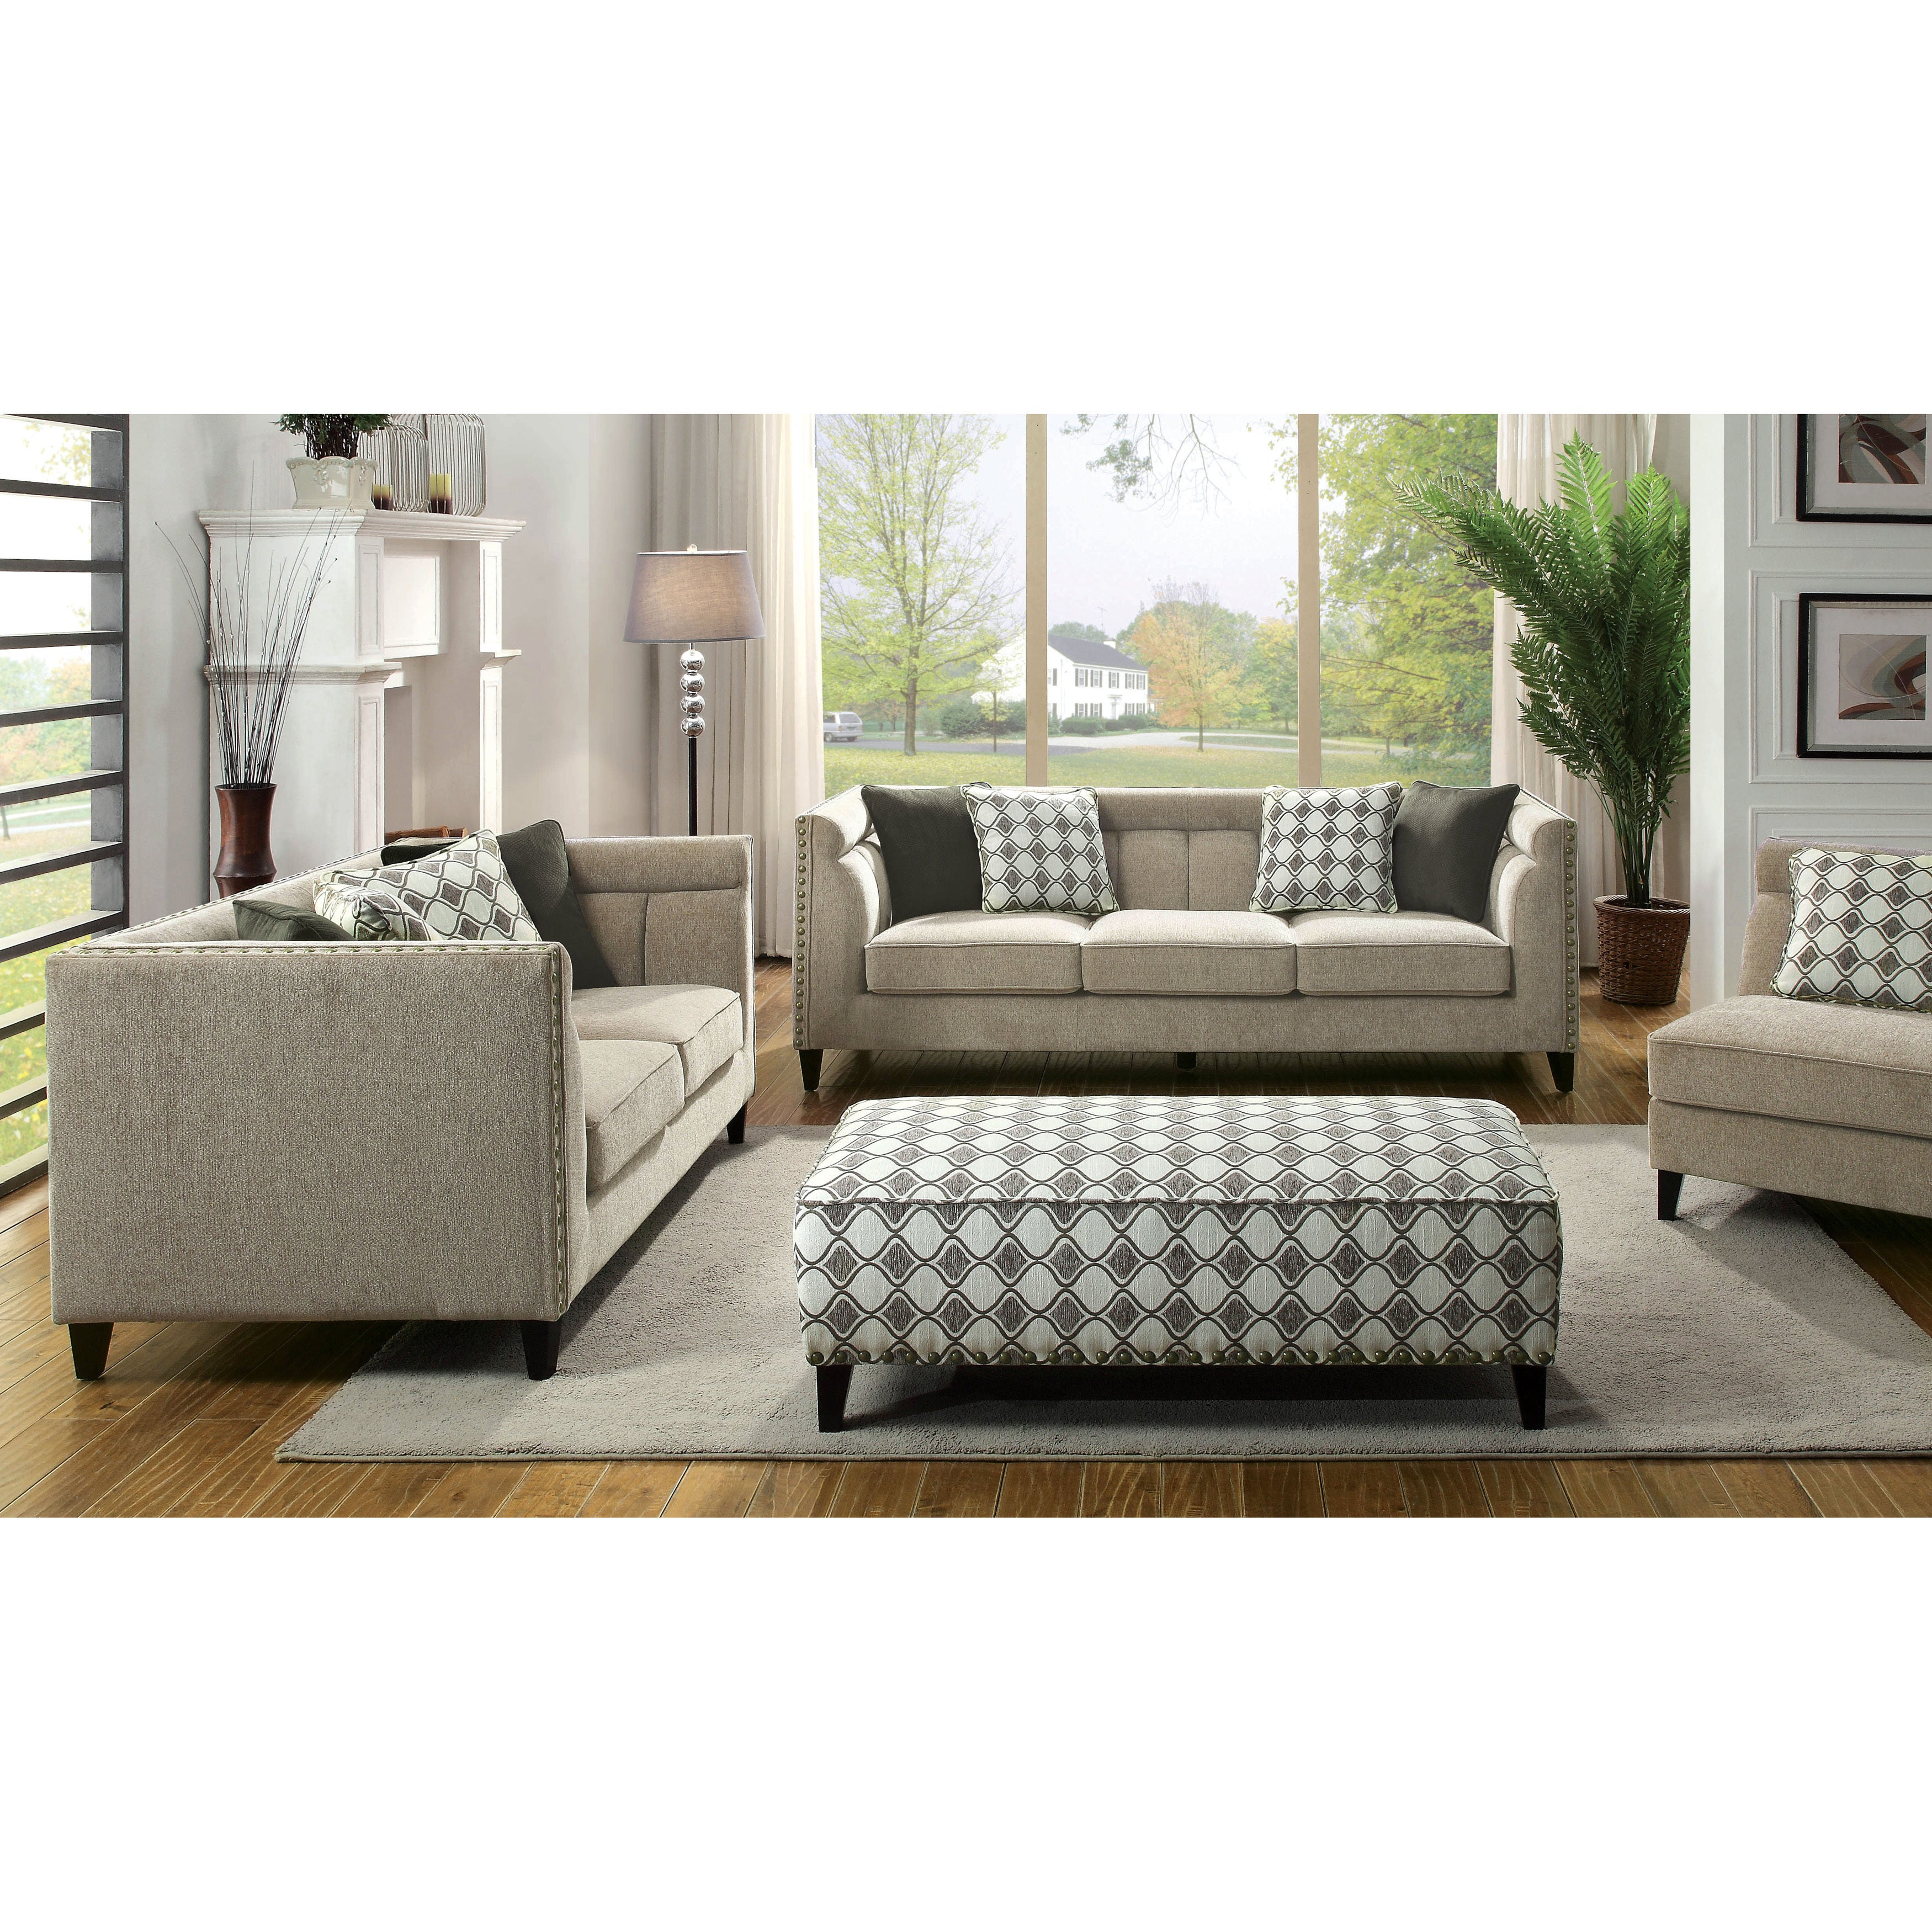 cmfurniture washington sofa com essentials mattress comfort pin furniture fairfax northern virginia couch craftmaster from dc patterned and the maryland belfort shop classic at your for store va